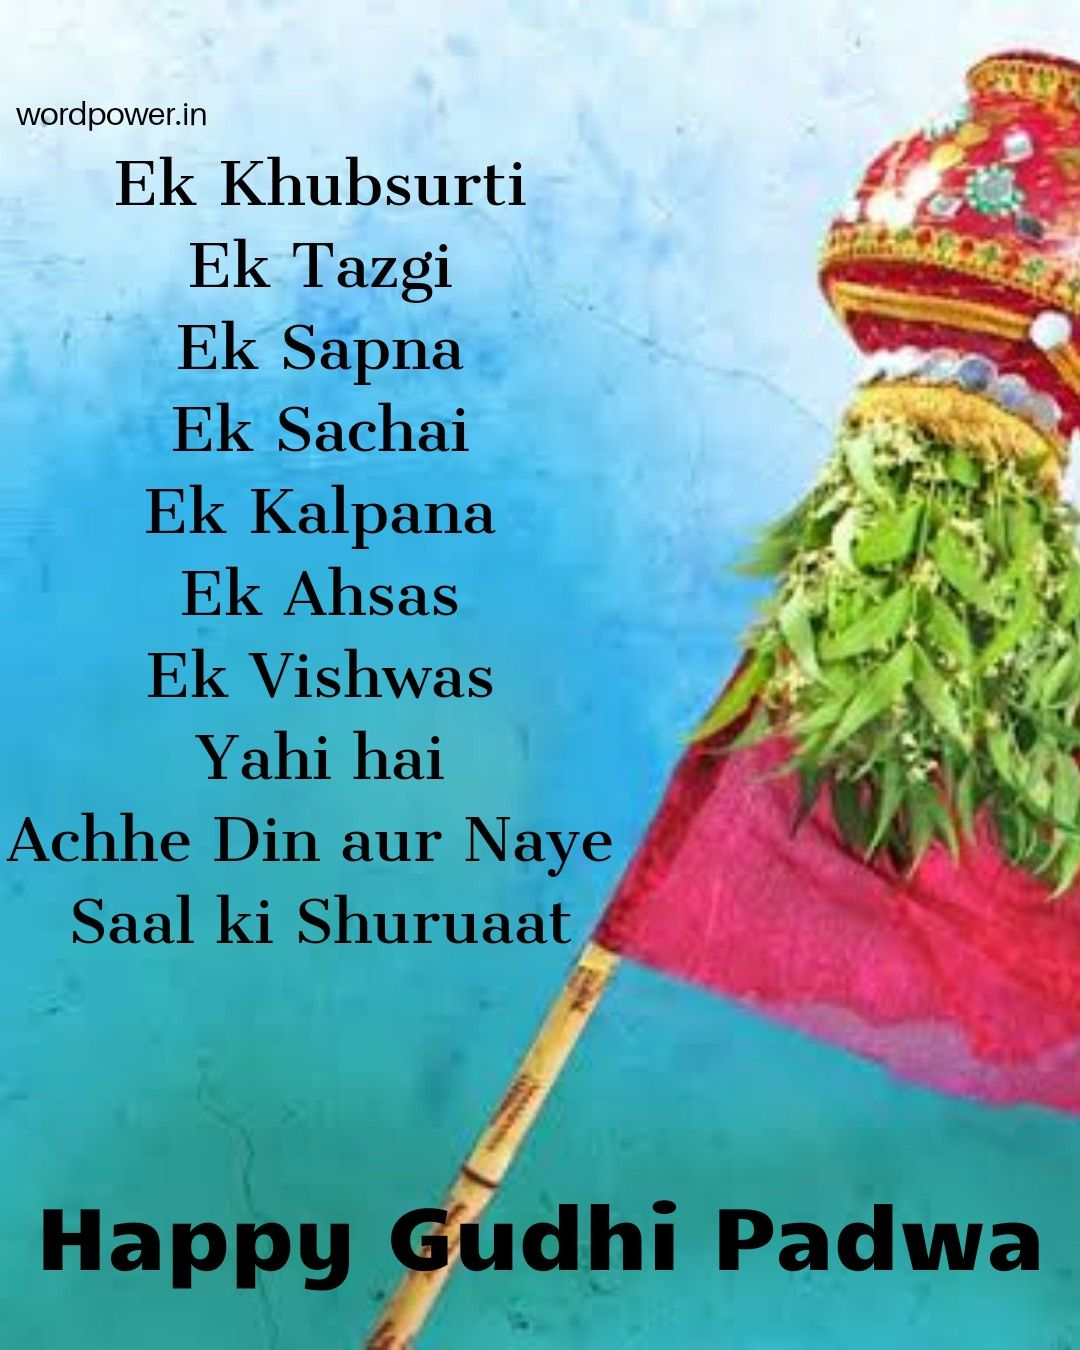 Happy Gudi Padwa Indian New Year Festival quotes, Best